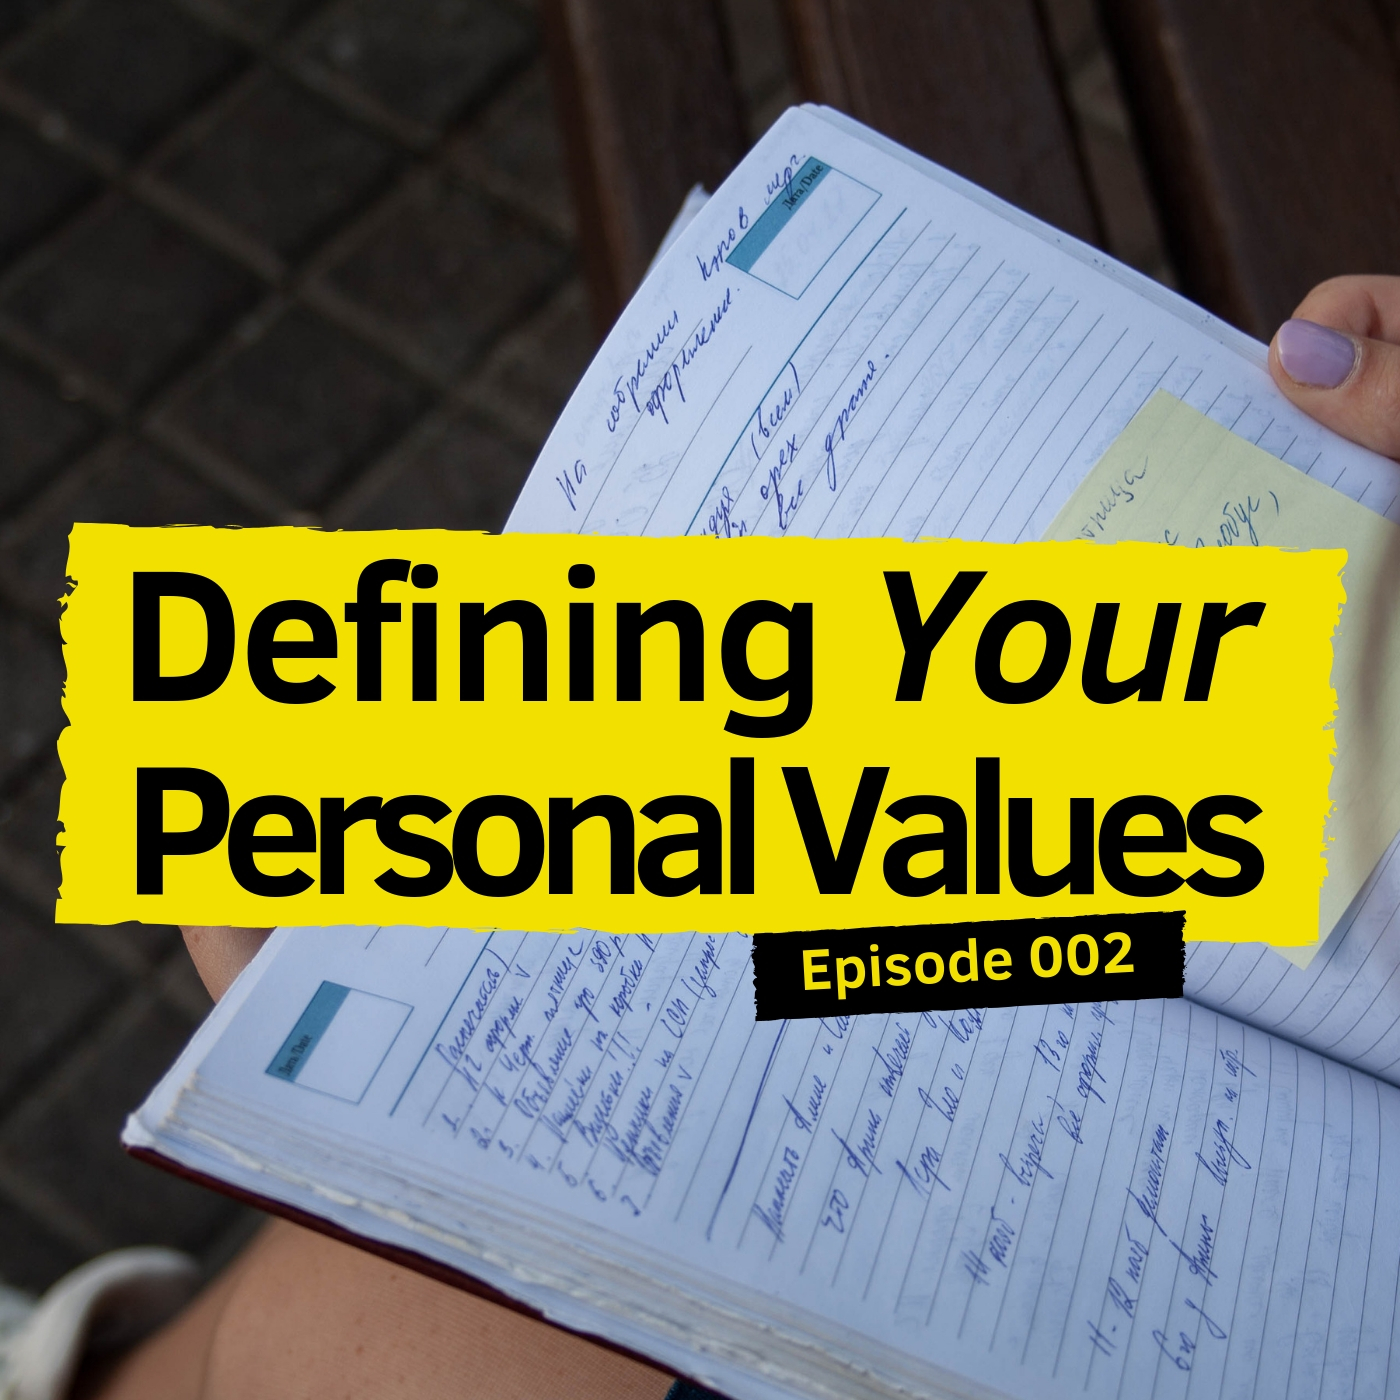 Episode 002 Defining Your Personal Values.jpg